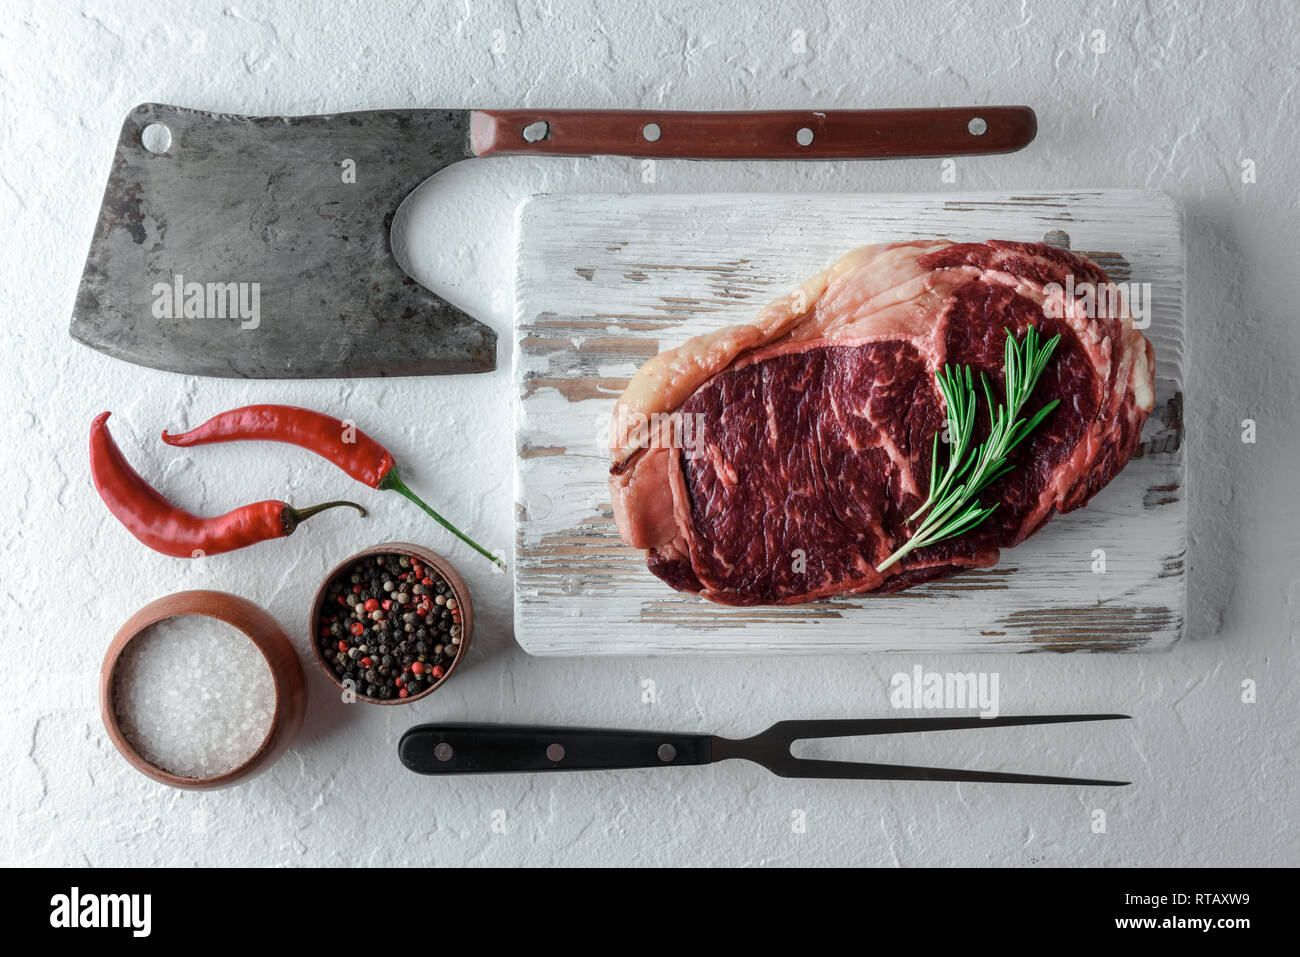 Marbling ribeye steak on black plate. Prime rib beef chop - Stock Image